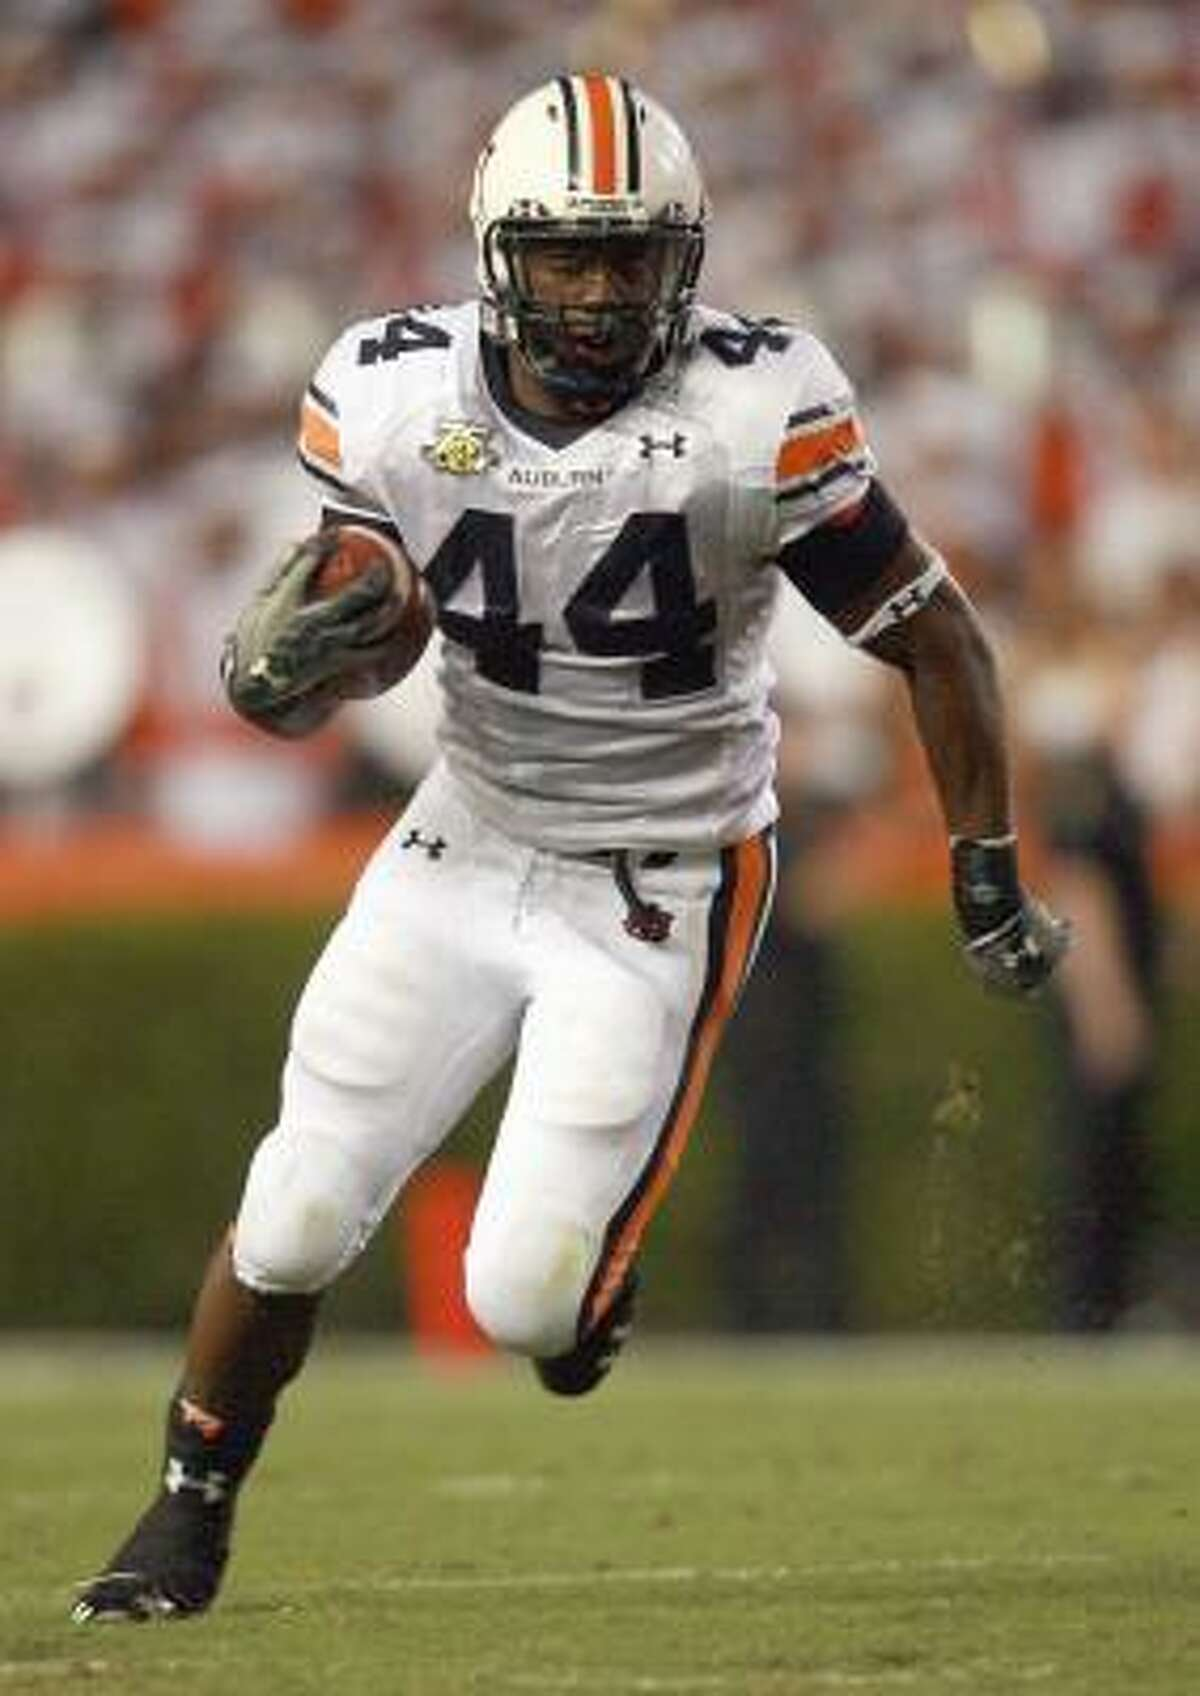 Last season, Ben Tate rushed for 1,362 yards and 10 touchdowns.